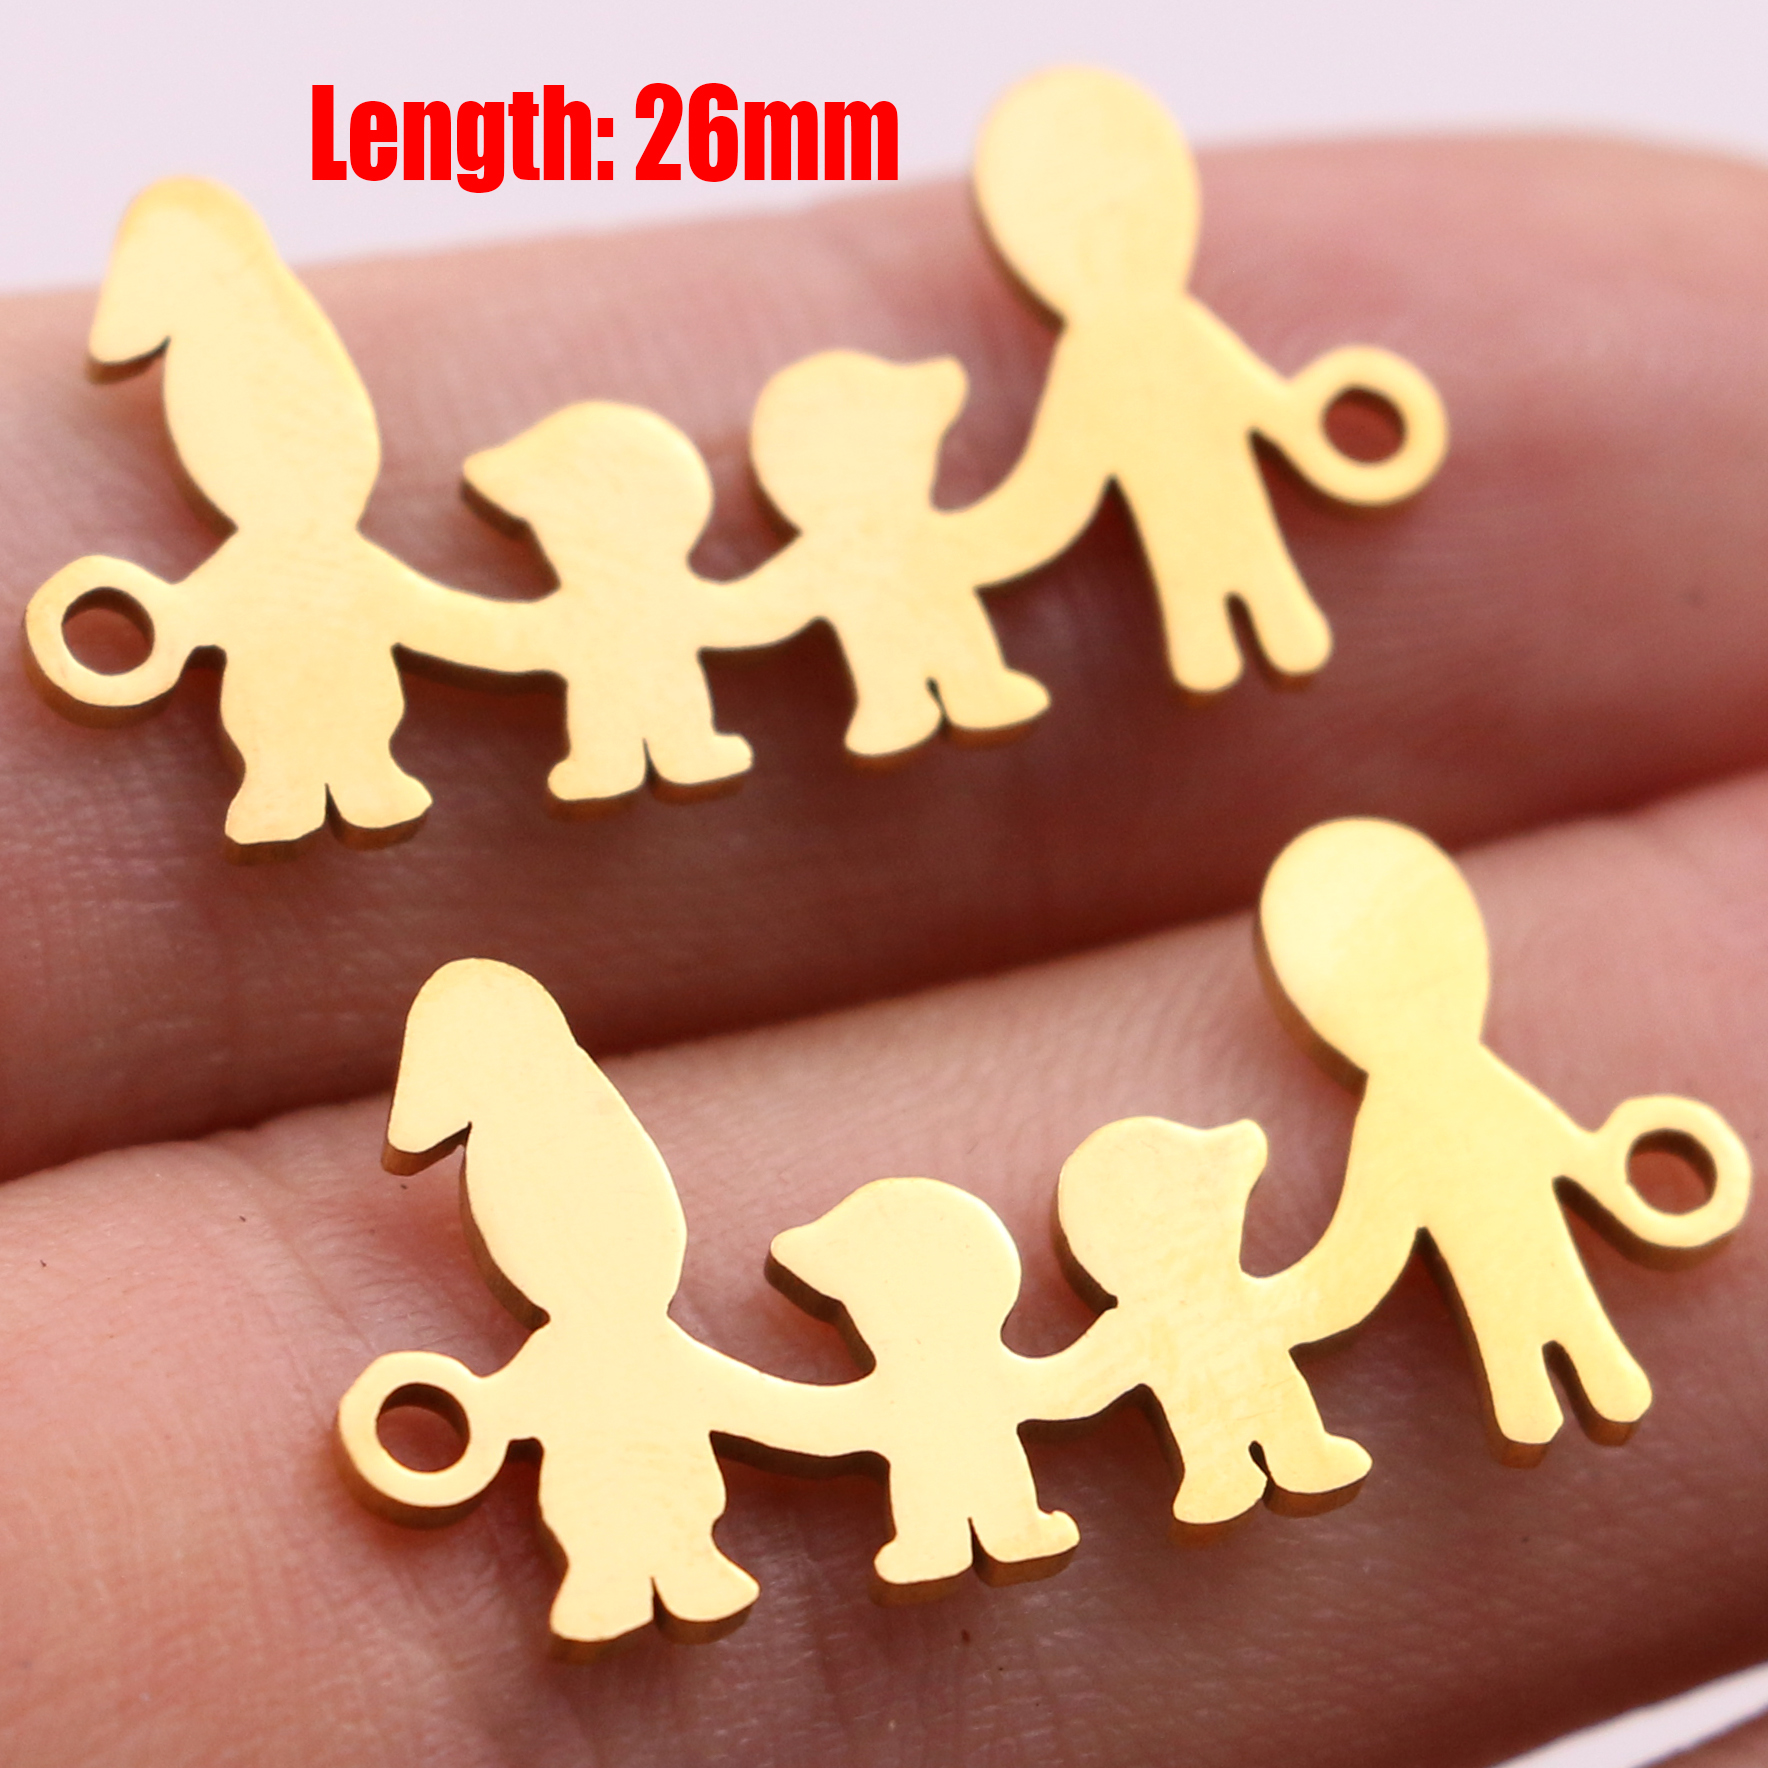 5pcs Family Chain Stainless Steel Pendant Necklace Parents and Children Necklaces Gold/steel Jewelry Gift for Mom Dad New Twice - Цвет: Gold 35